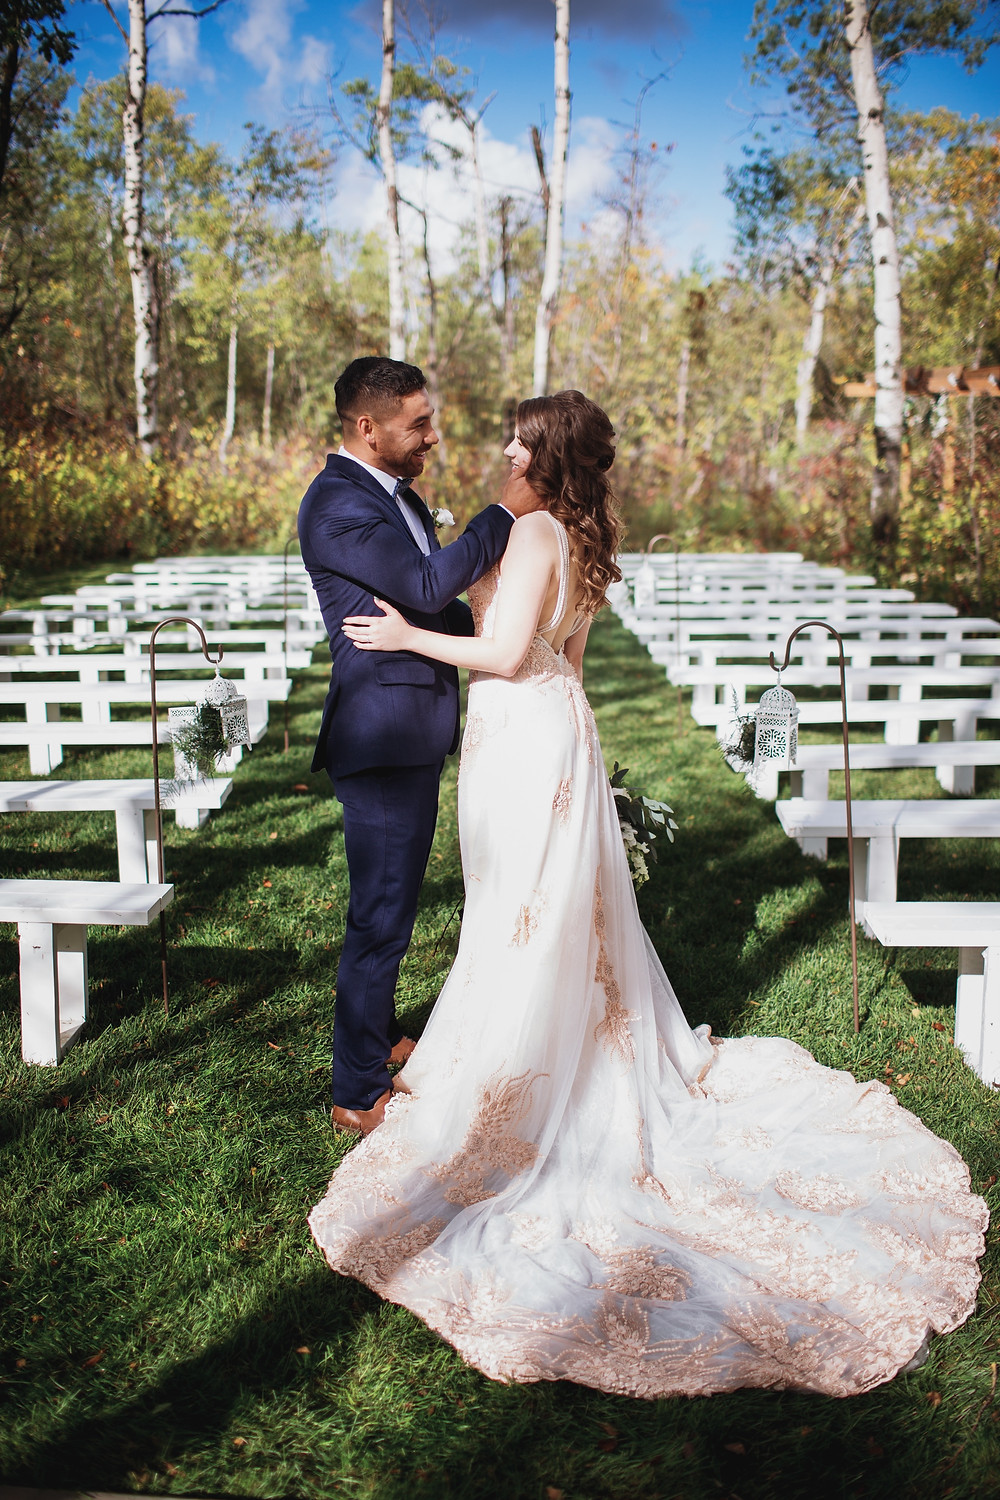 Blush wedding gown with navy groom's suit.